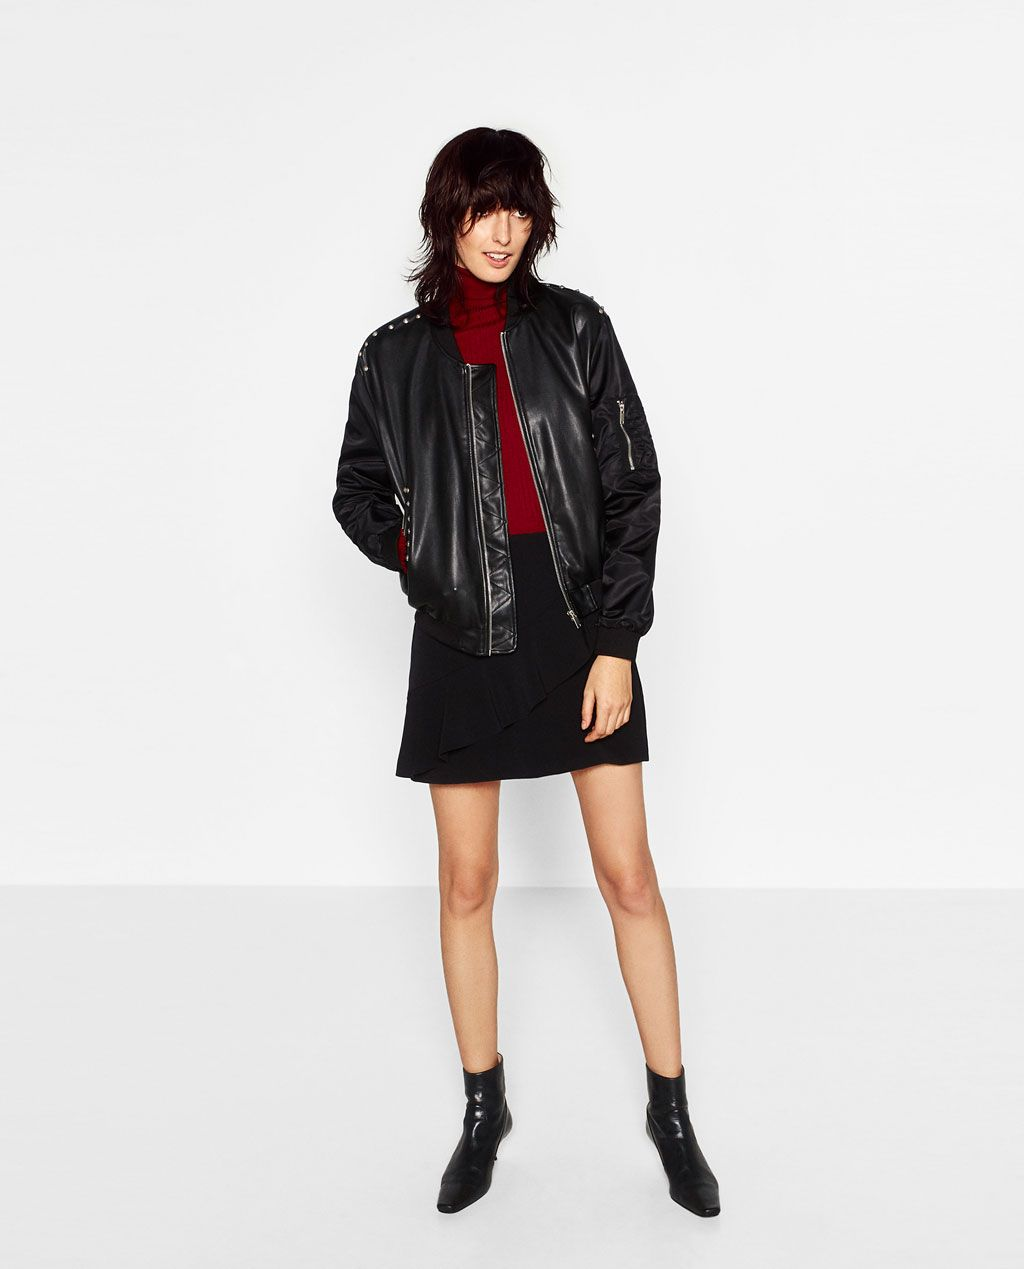 ZARA - WOMAN - EMBROIDERED LEATHER EFFECT BOMBER JACKET